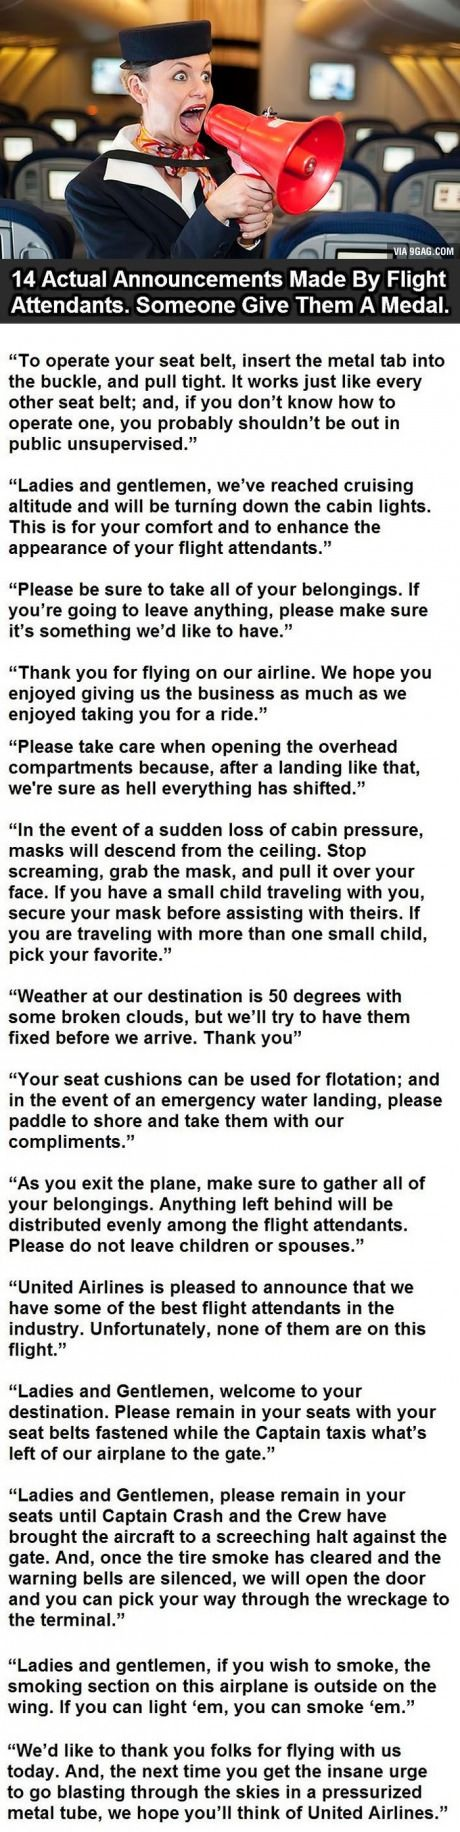 14 Actual Announcements By Flight Attendants. This Is How It Should Be.